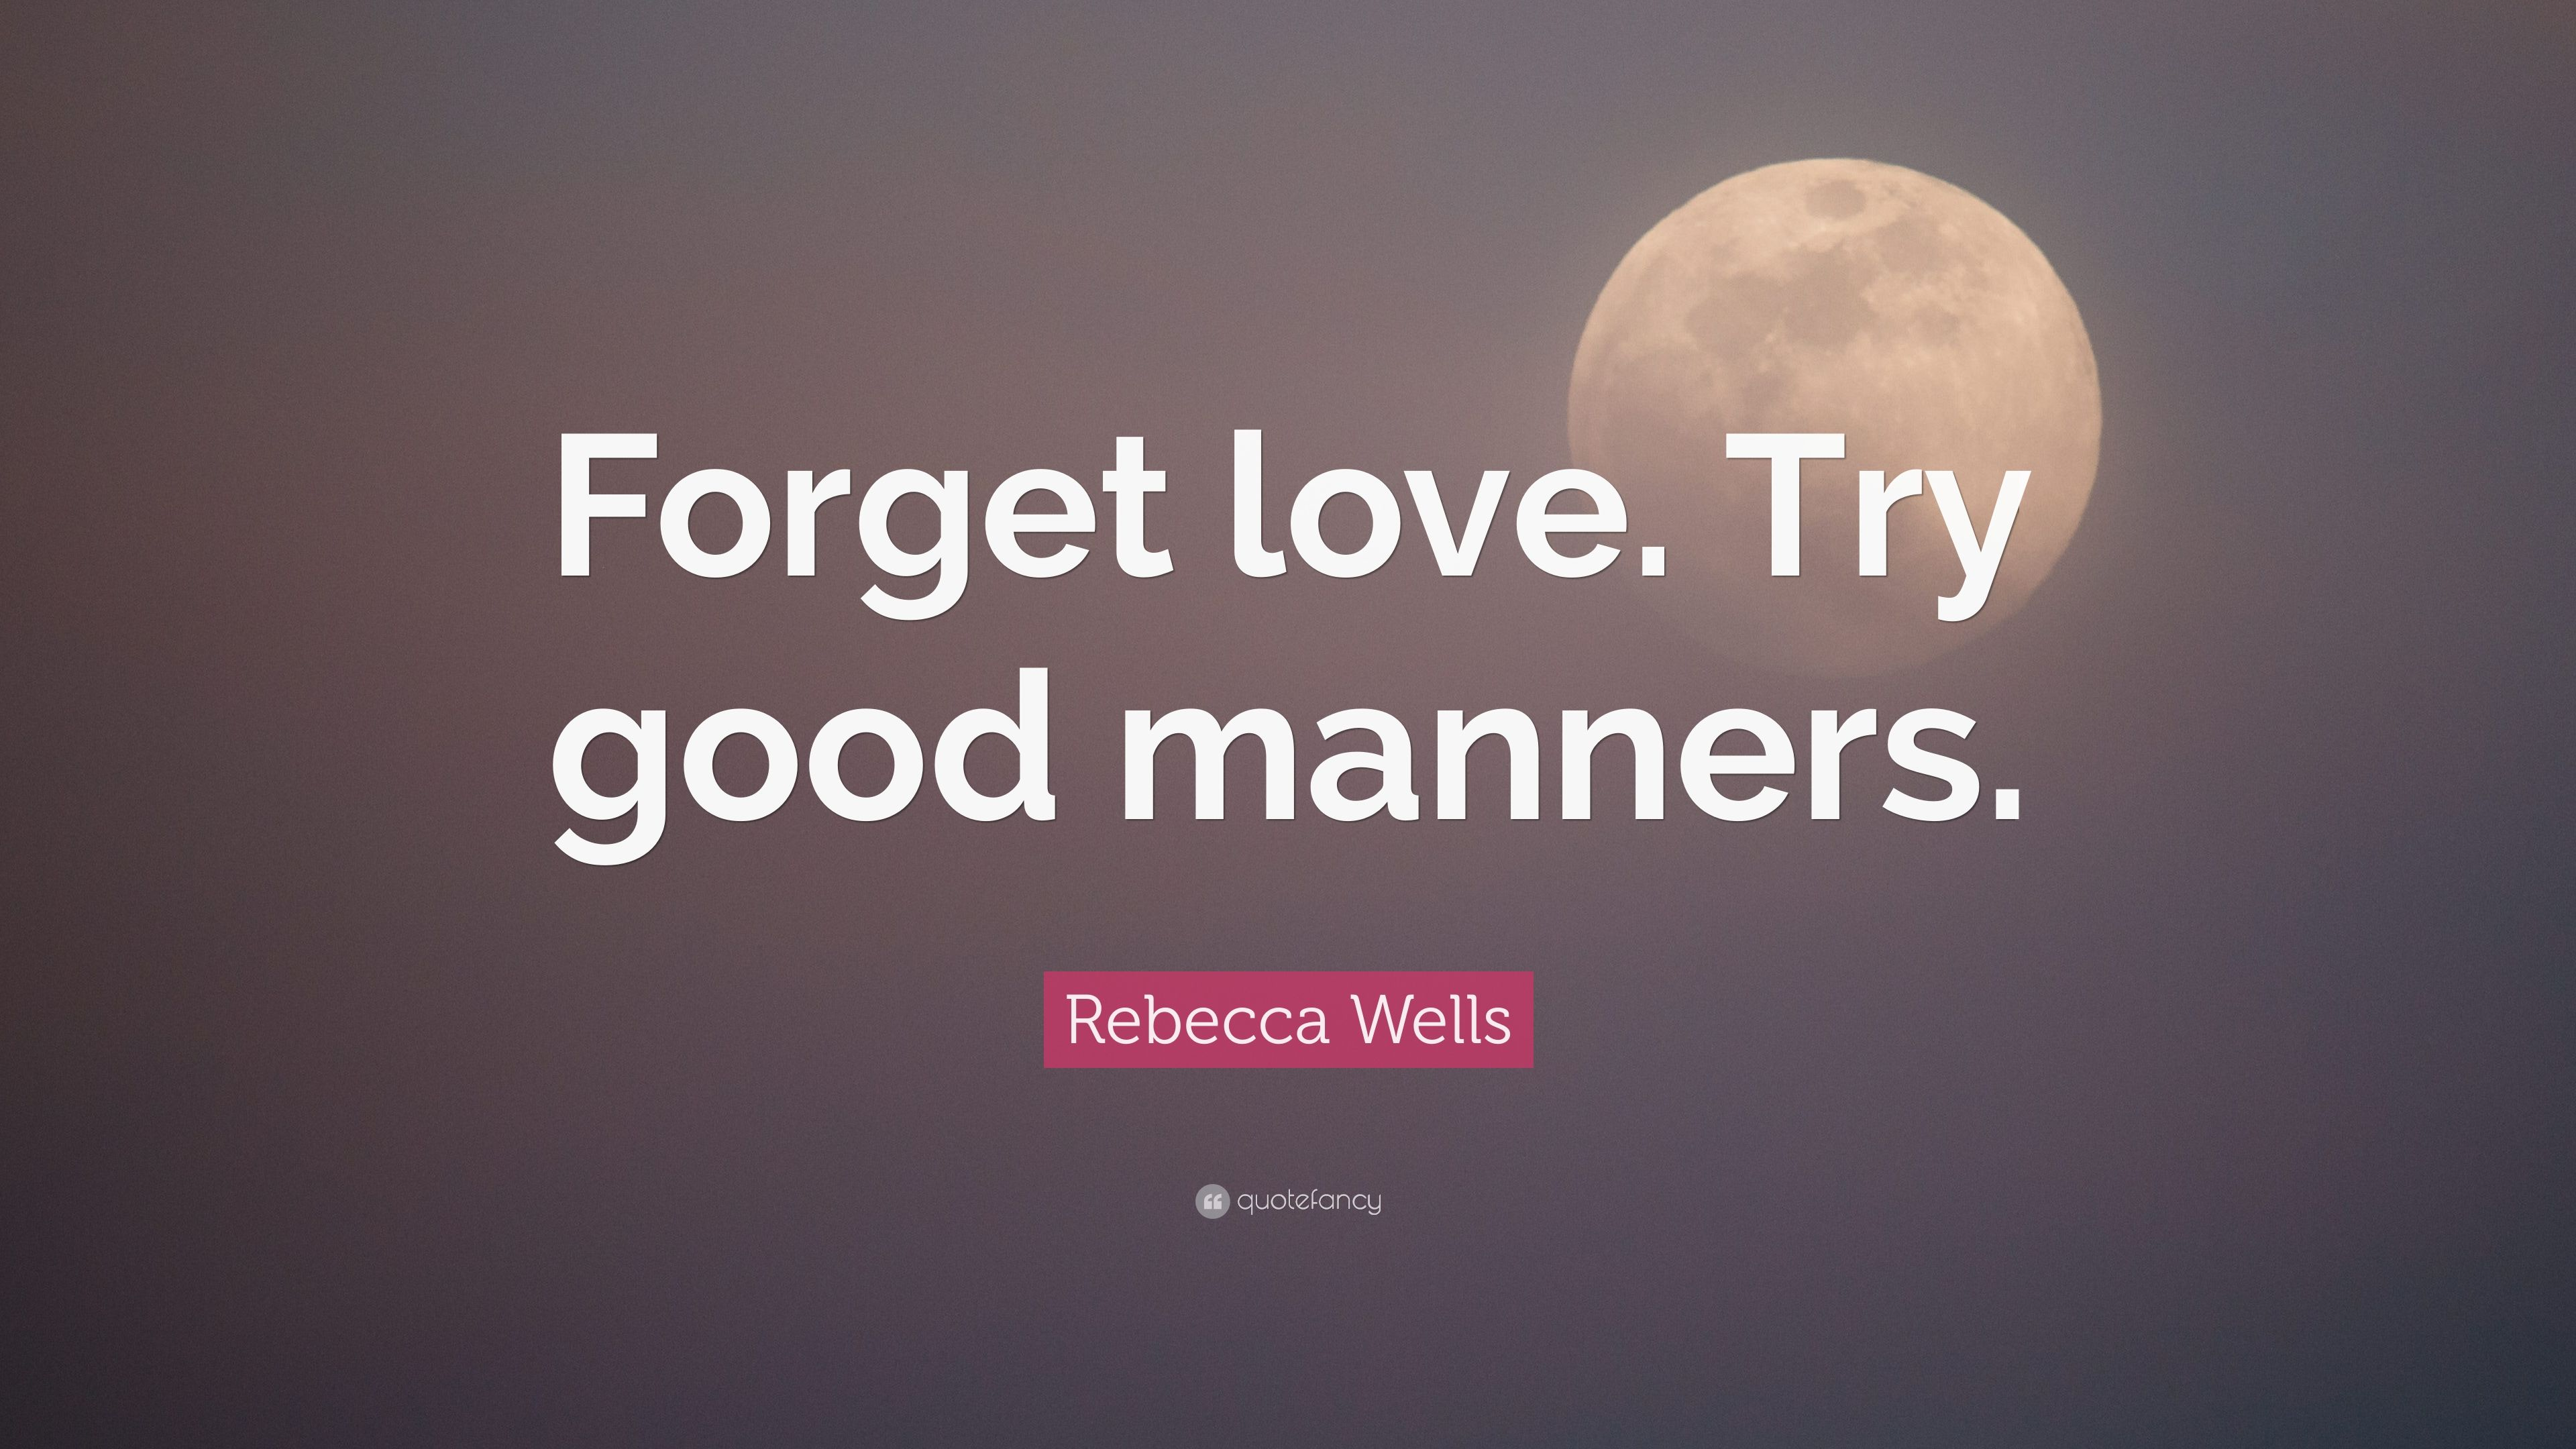 Rebecca Wells Quote: U201cForget Love. Try Good Manners.u201d